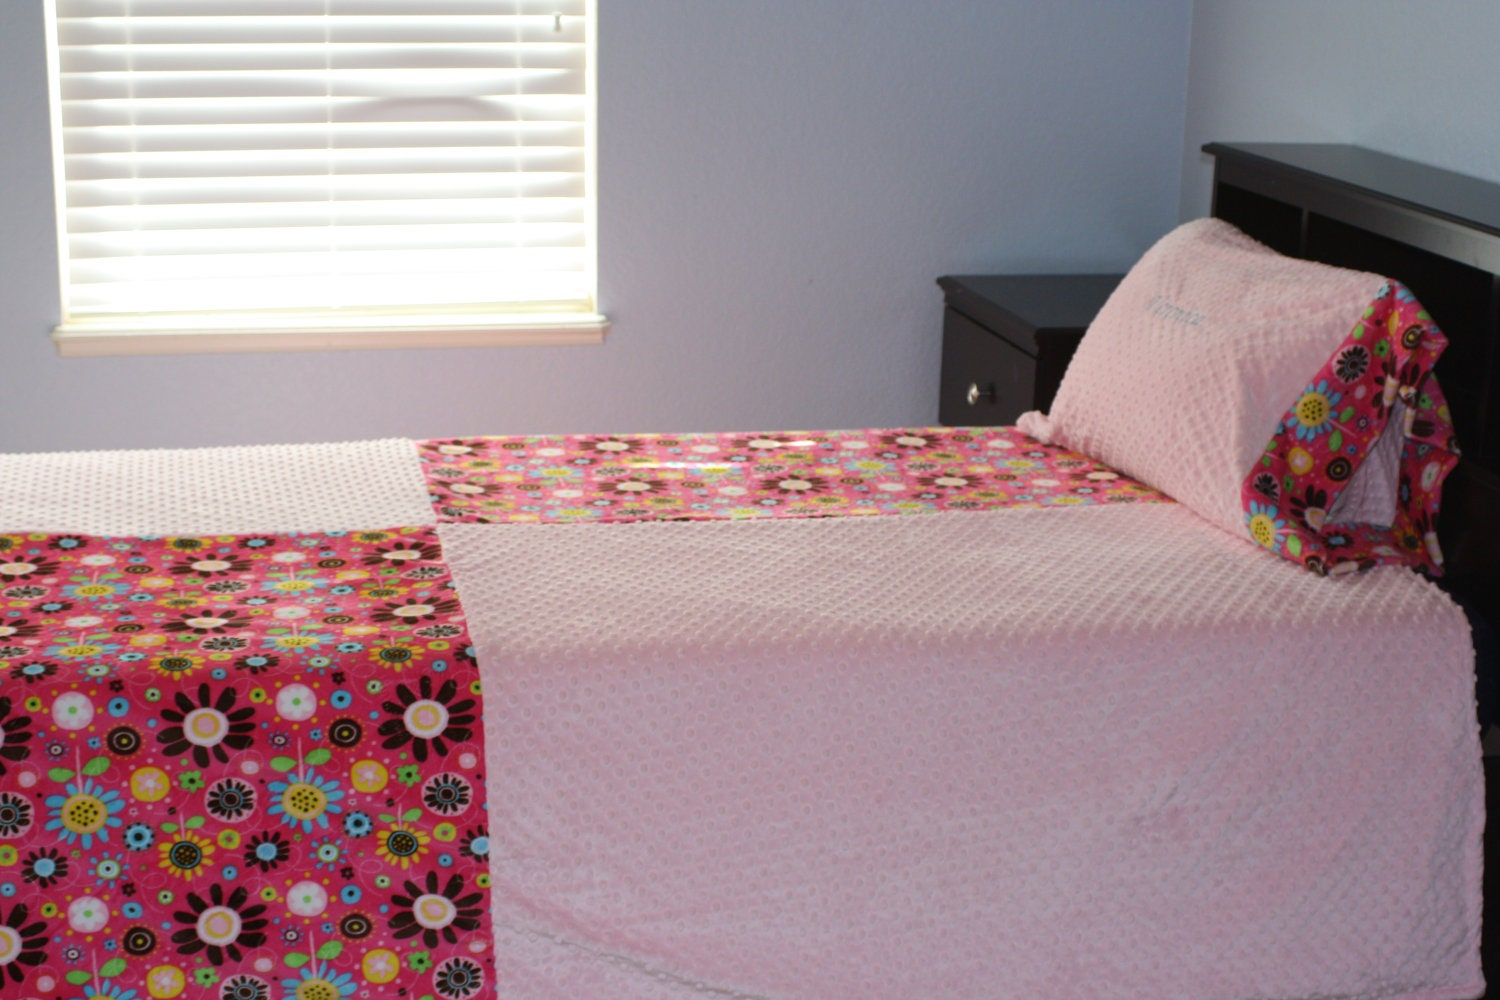 twin size minky blanket adult child teenager bedding by lilcubhub. Black Bedroom Furniture Sets. Home Design Ideas